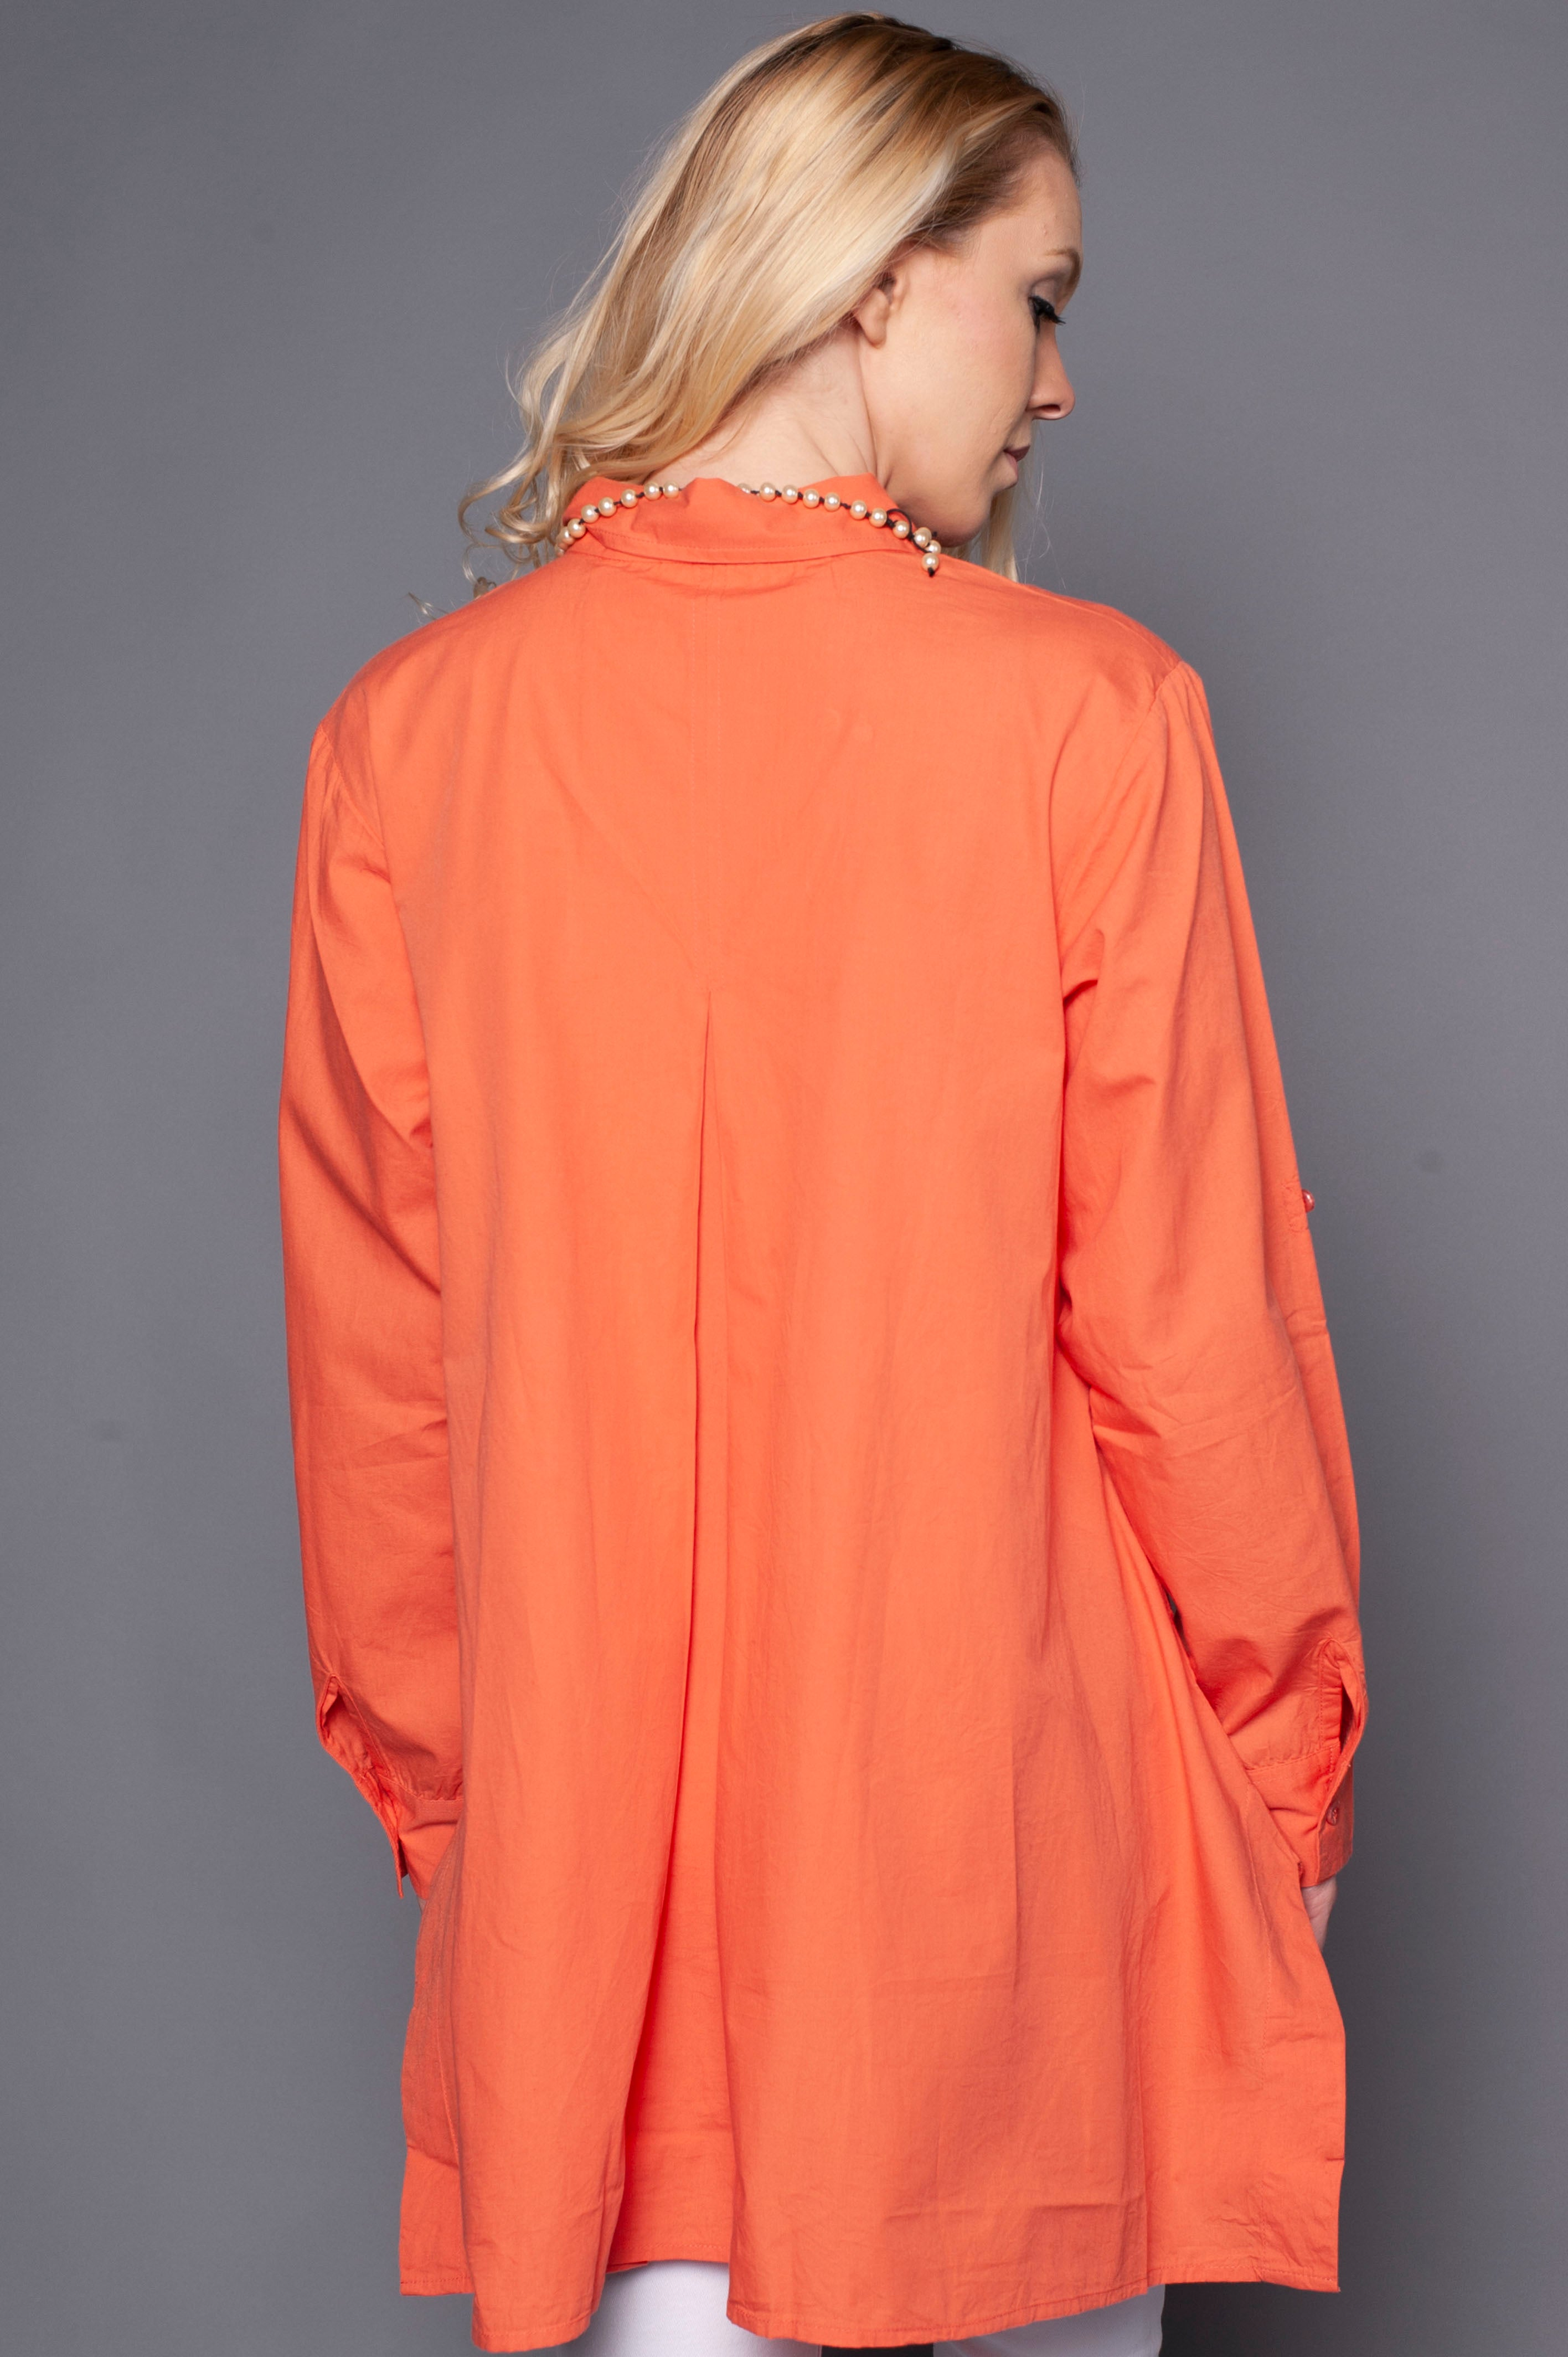 Long Sleeve Coral Shirt with Flare